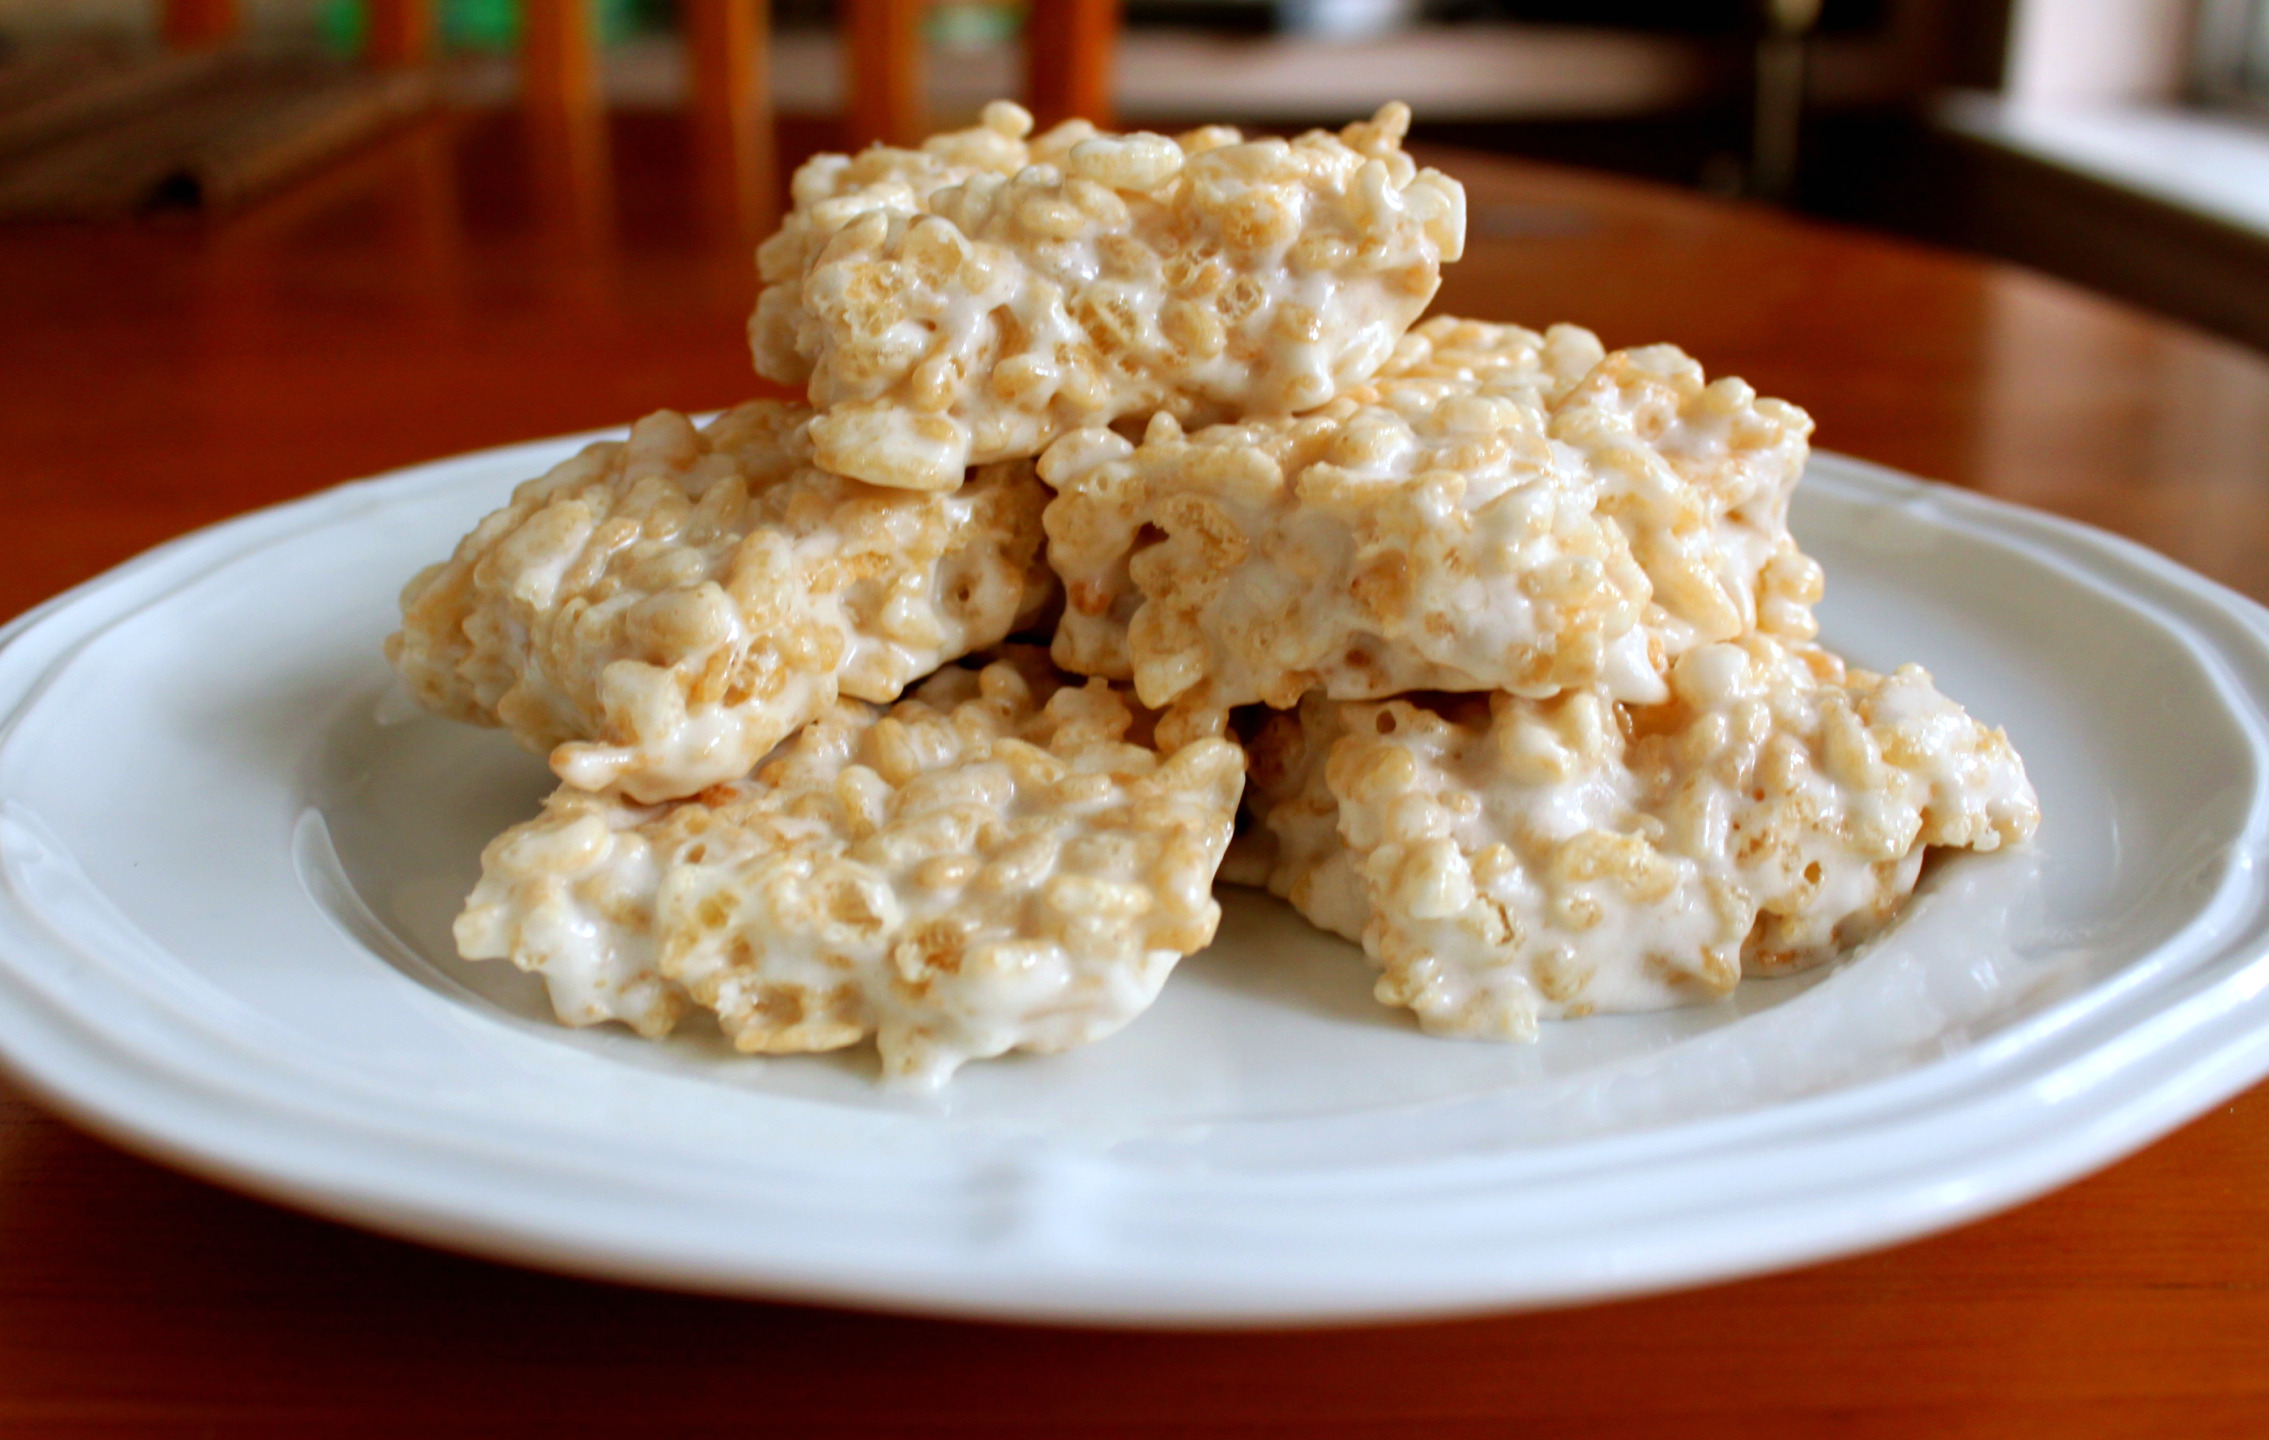 Rice krispies treats with homemade marshmallow 52 kitchen adventures rice krispies treats with homemade marshmallow ccuart Choice Image